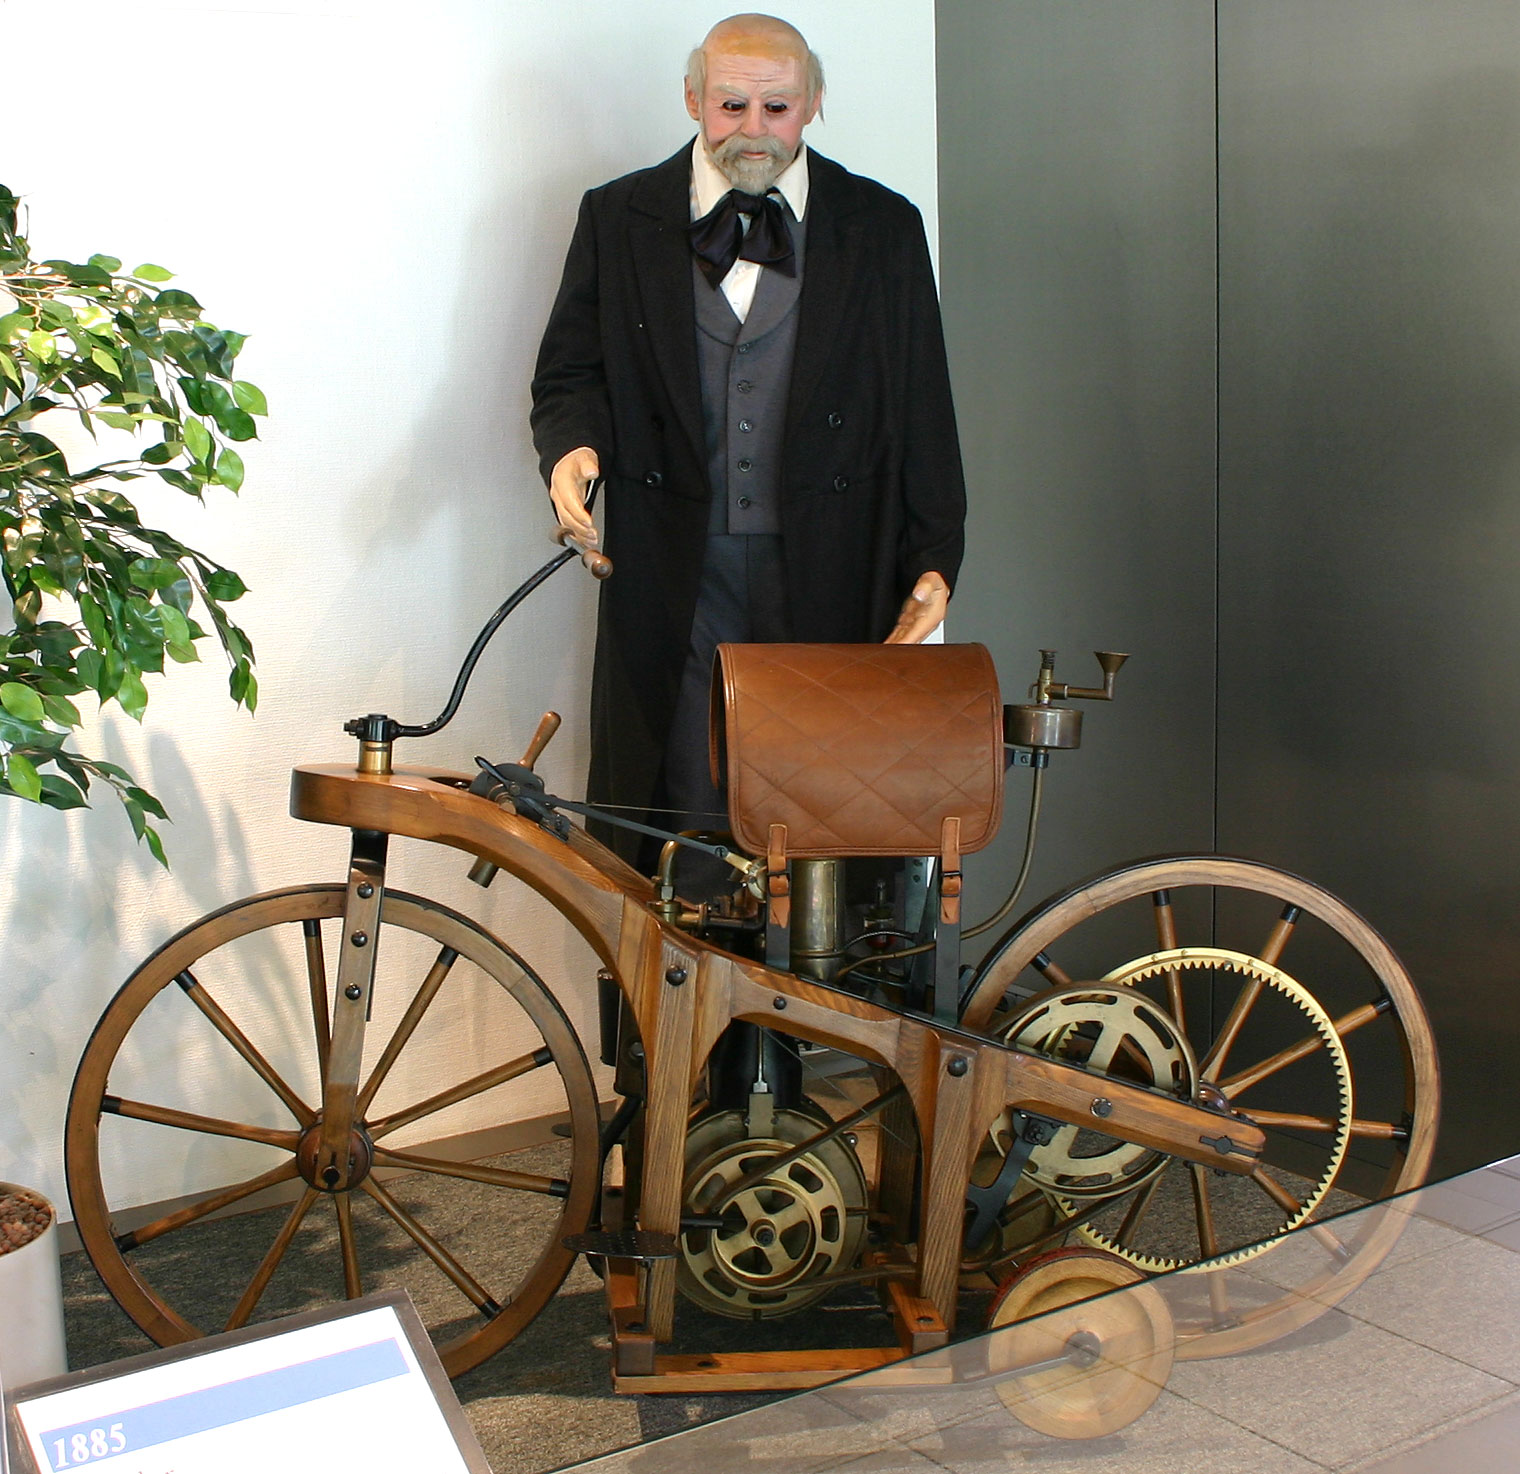 Replica of the first motorcycle model by Daimler and Maybach.